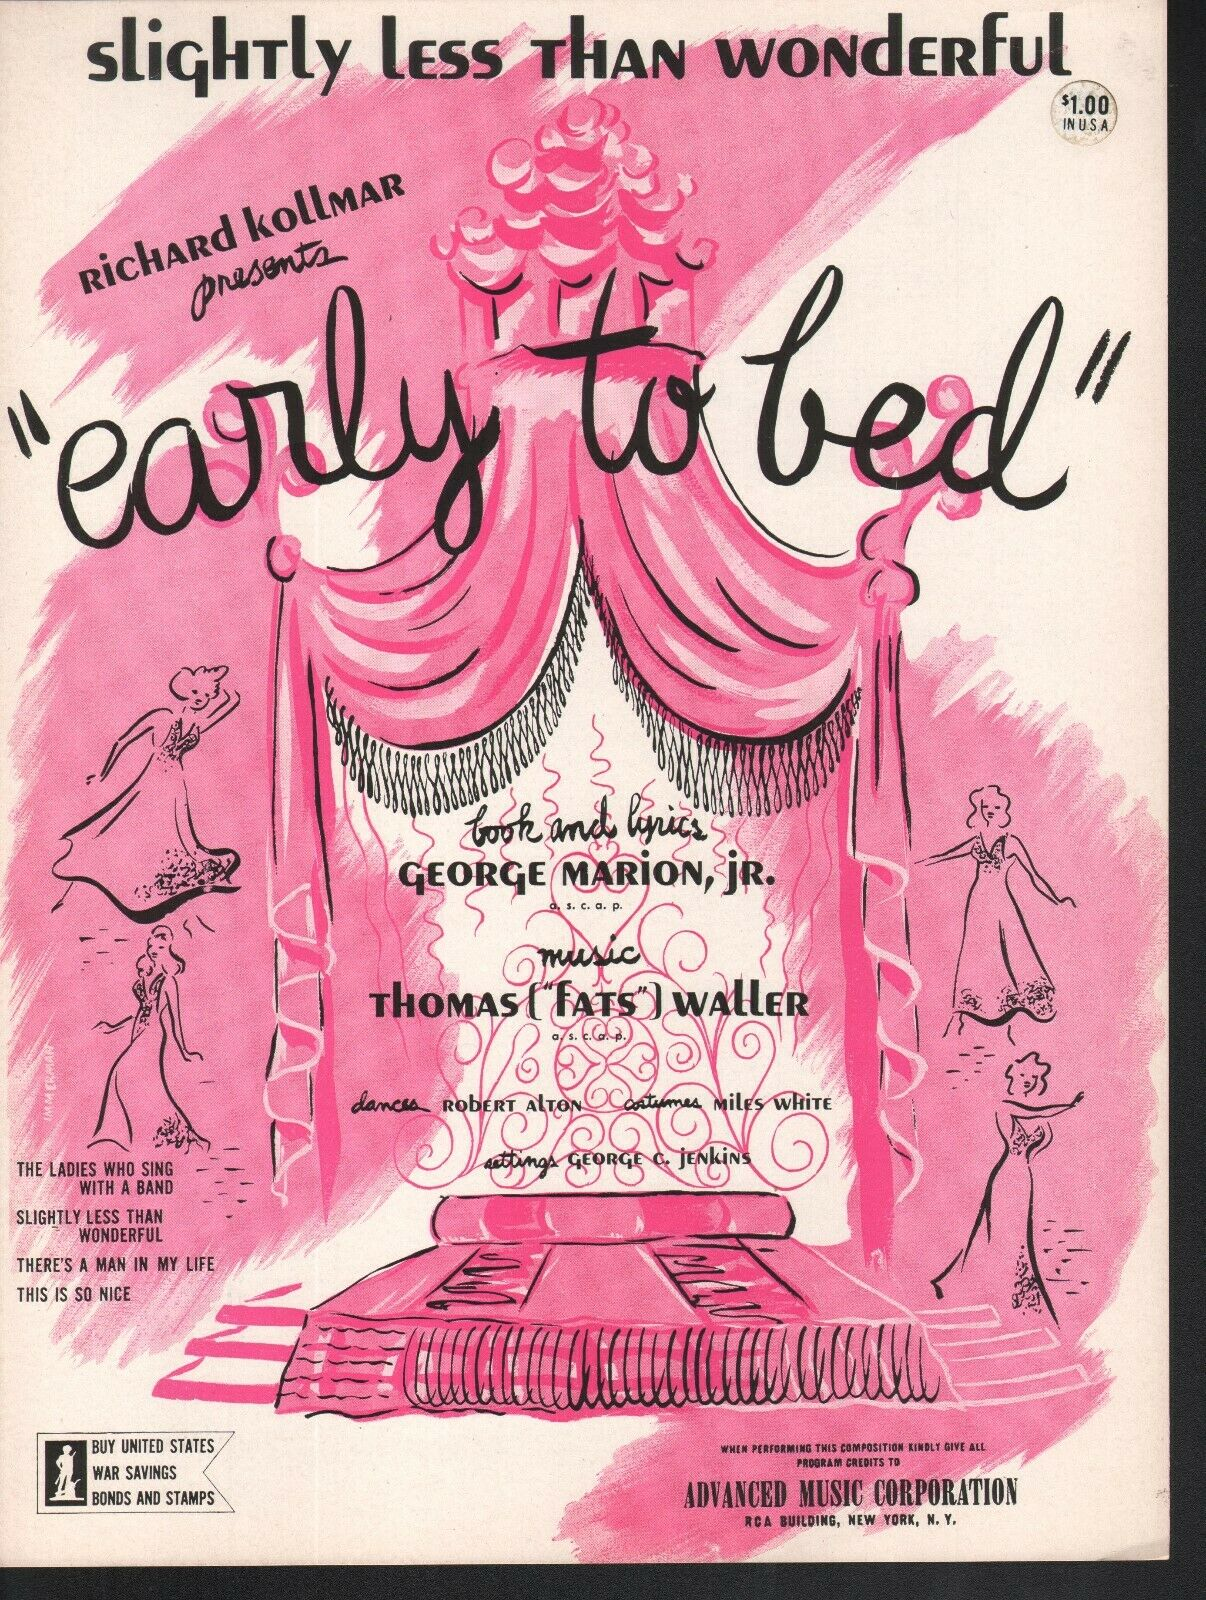 Slightly Less Than Wonderful 1943 Fats Waller Early Early Early To Bed Sheet Music 444c3f